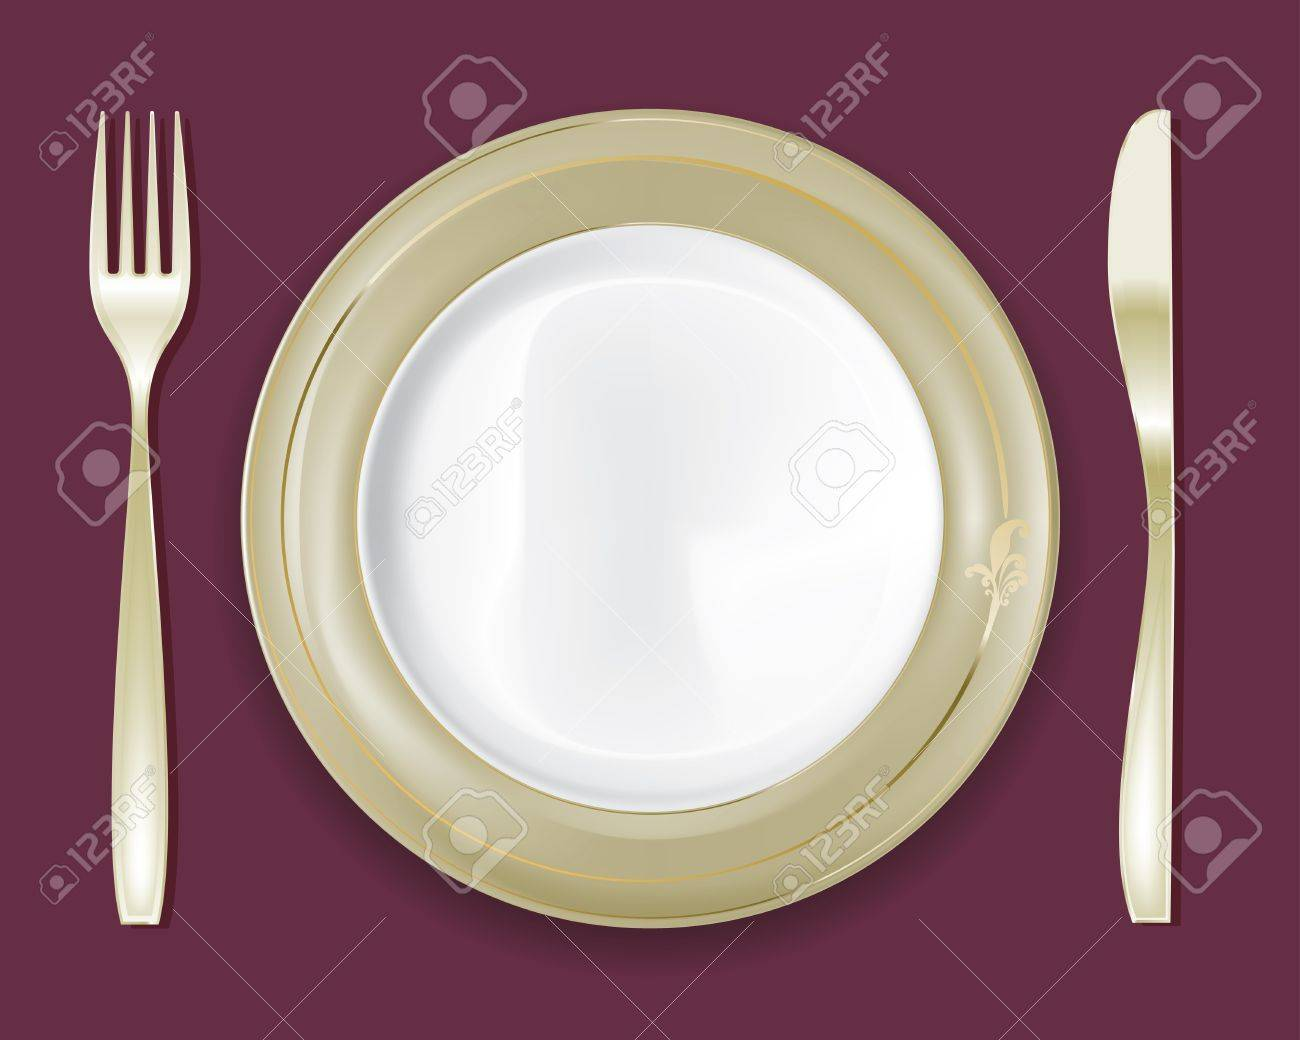 1300x1040 Empty Dinner Plate, Drawing The Knife And Fork Set Royalty Free